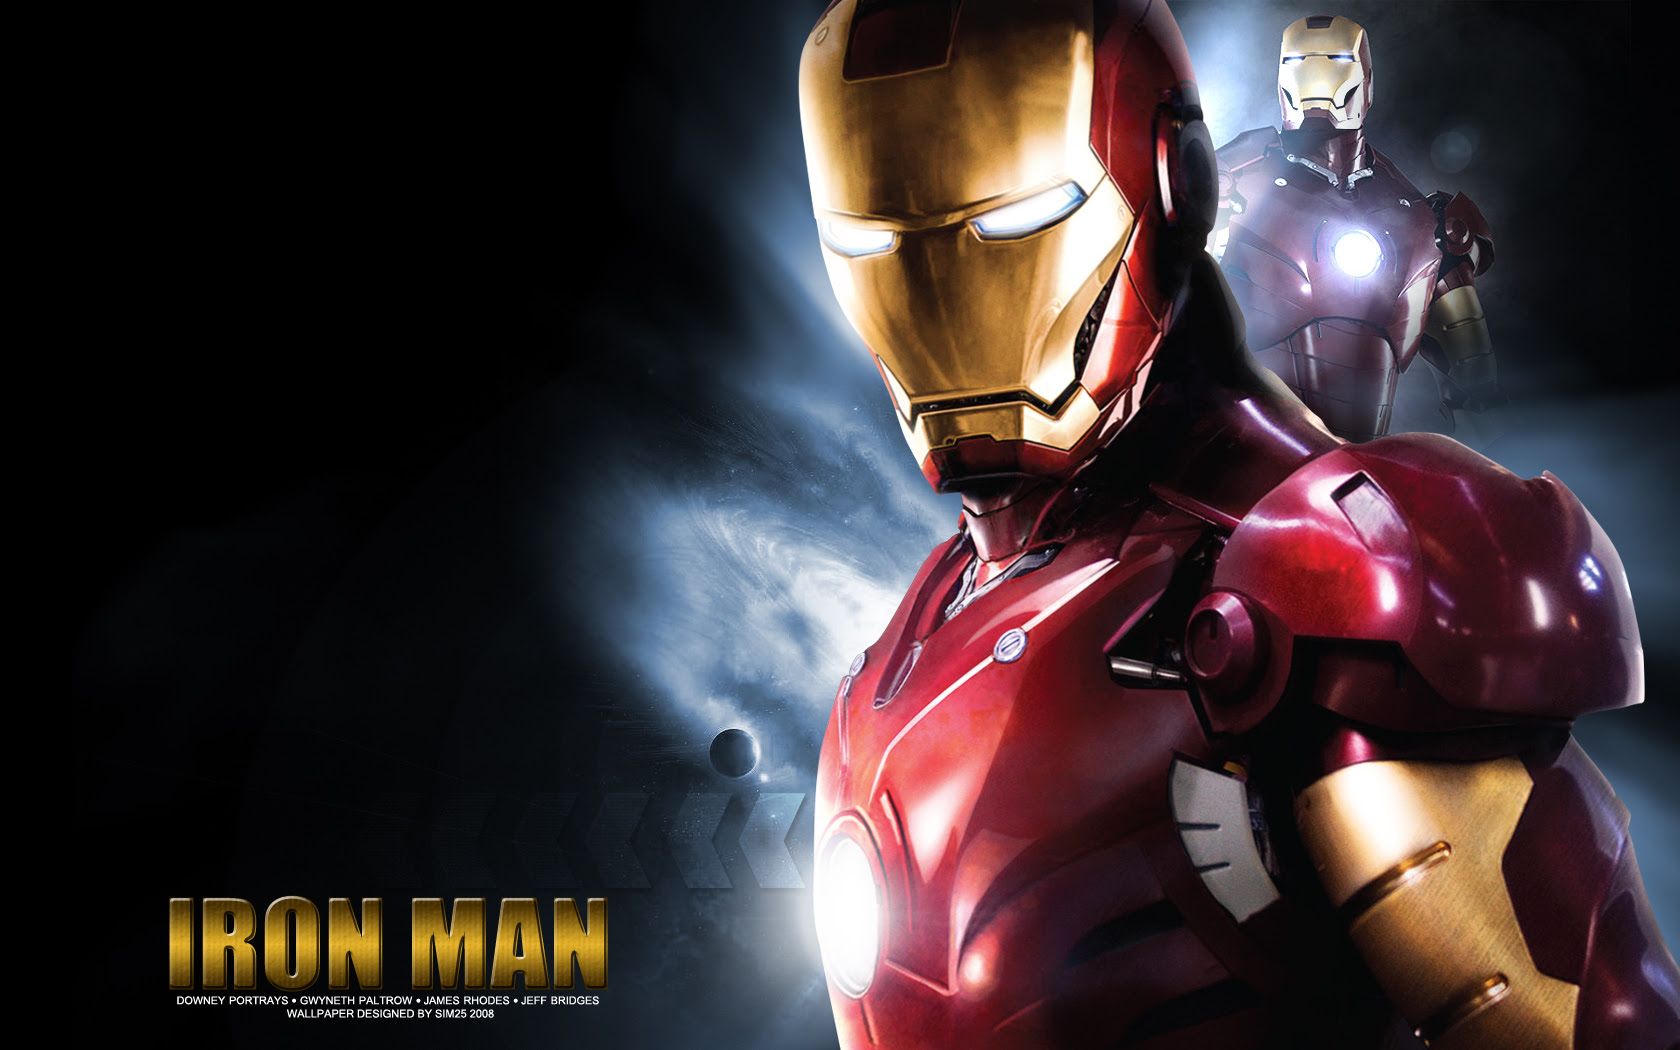 Iron Man 3 Images Iron Man Hd Wallpaper And Background Photos 31780180